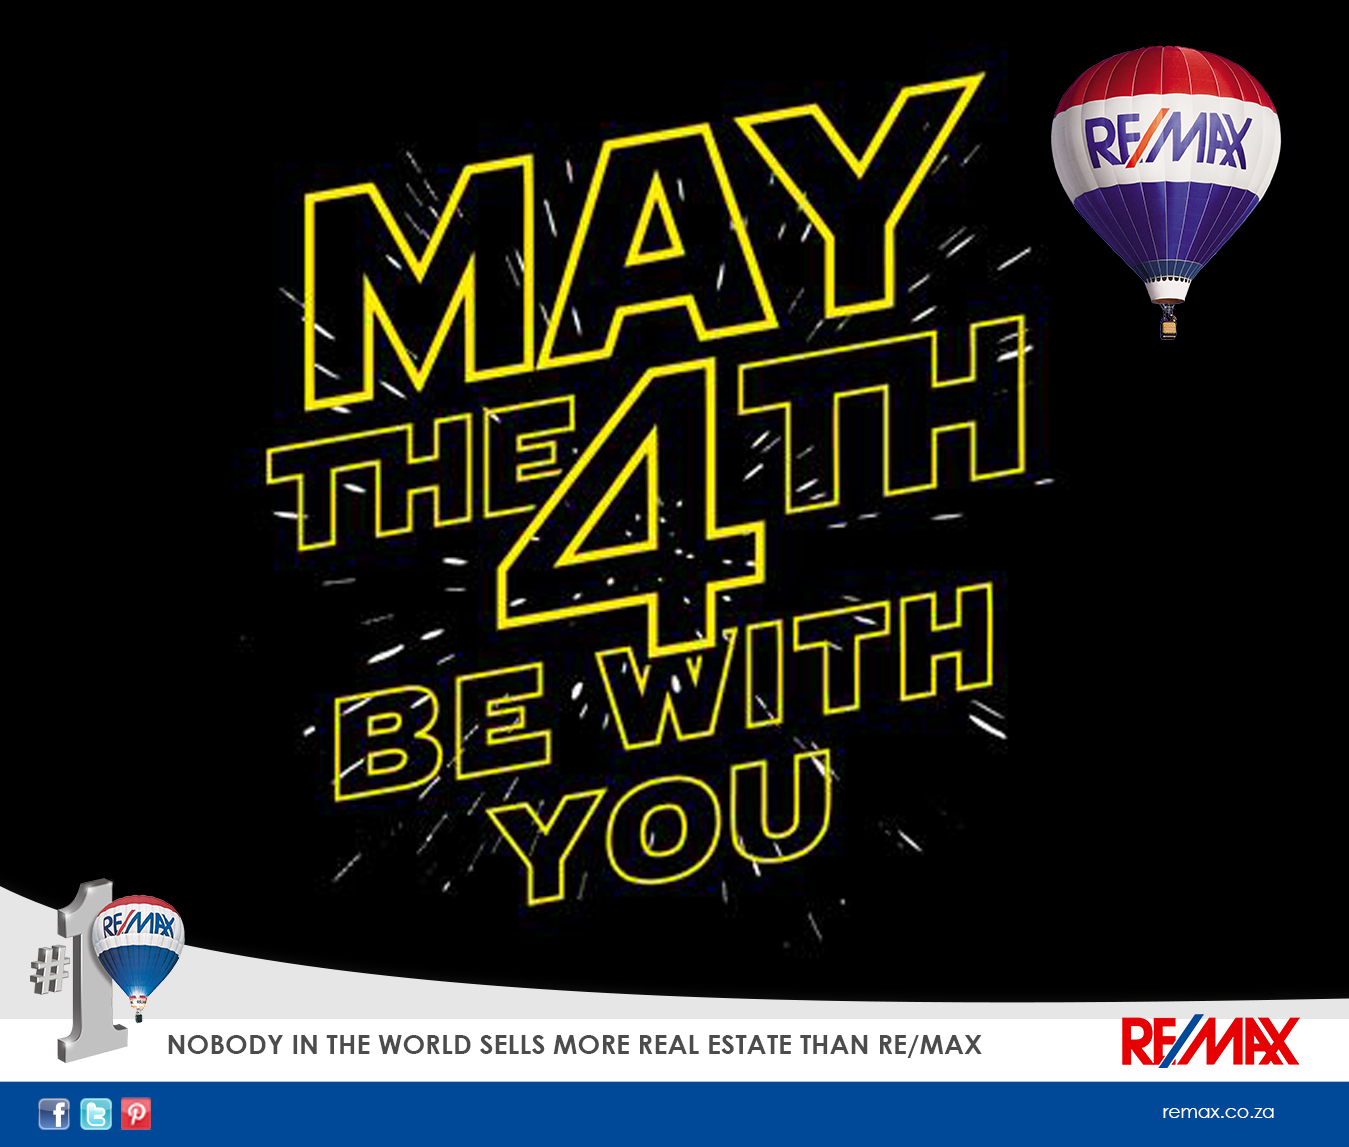 May The 4th Be With You Remaxsa Happy Star Wars Day Star Wars Day Star Wars Humor